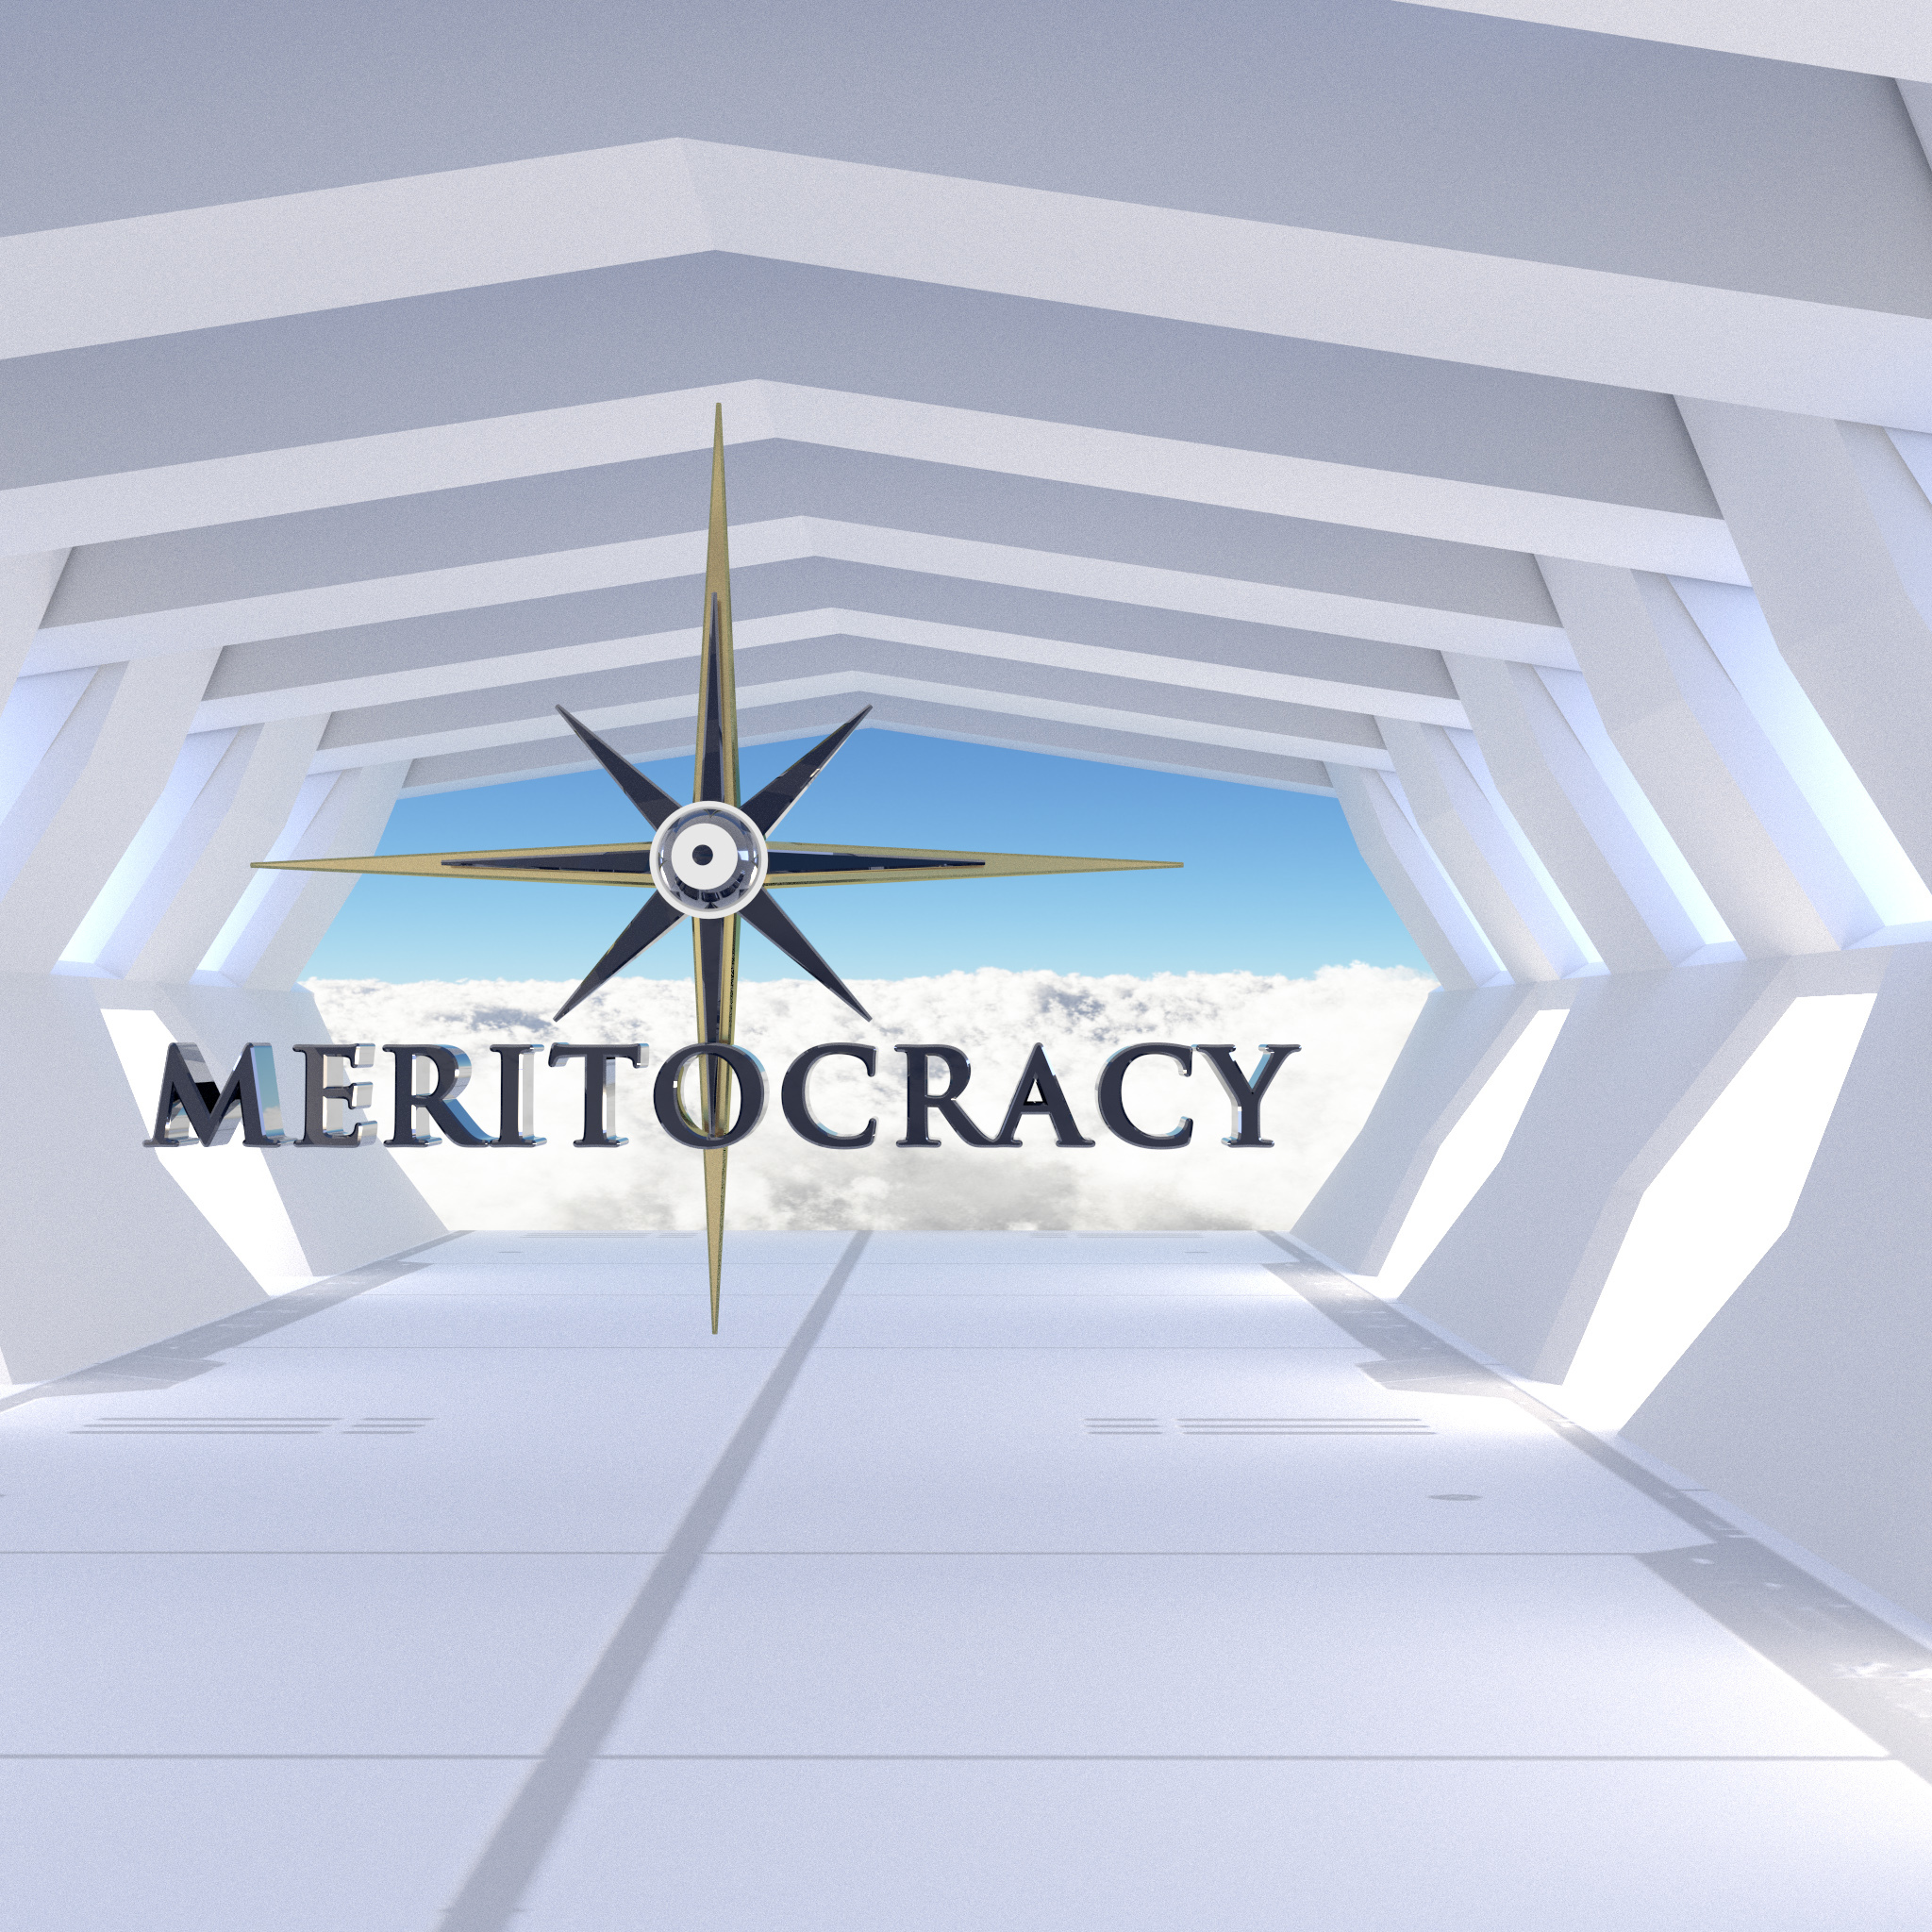 what is meritocracy The post-meritocracy manifesto english deutsch español português हिन्दी भाषा meritocracy is a founding principle of the open source movement, and the ideal of meritocracy is perpetuated throughout our field in the way people are recruited, hired, retained, promoted, and valued.